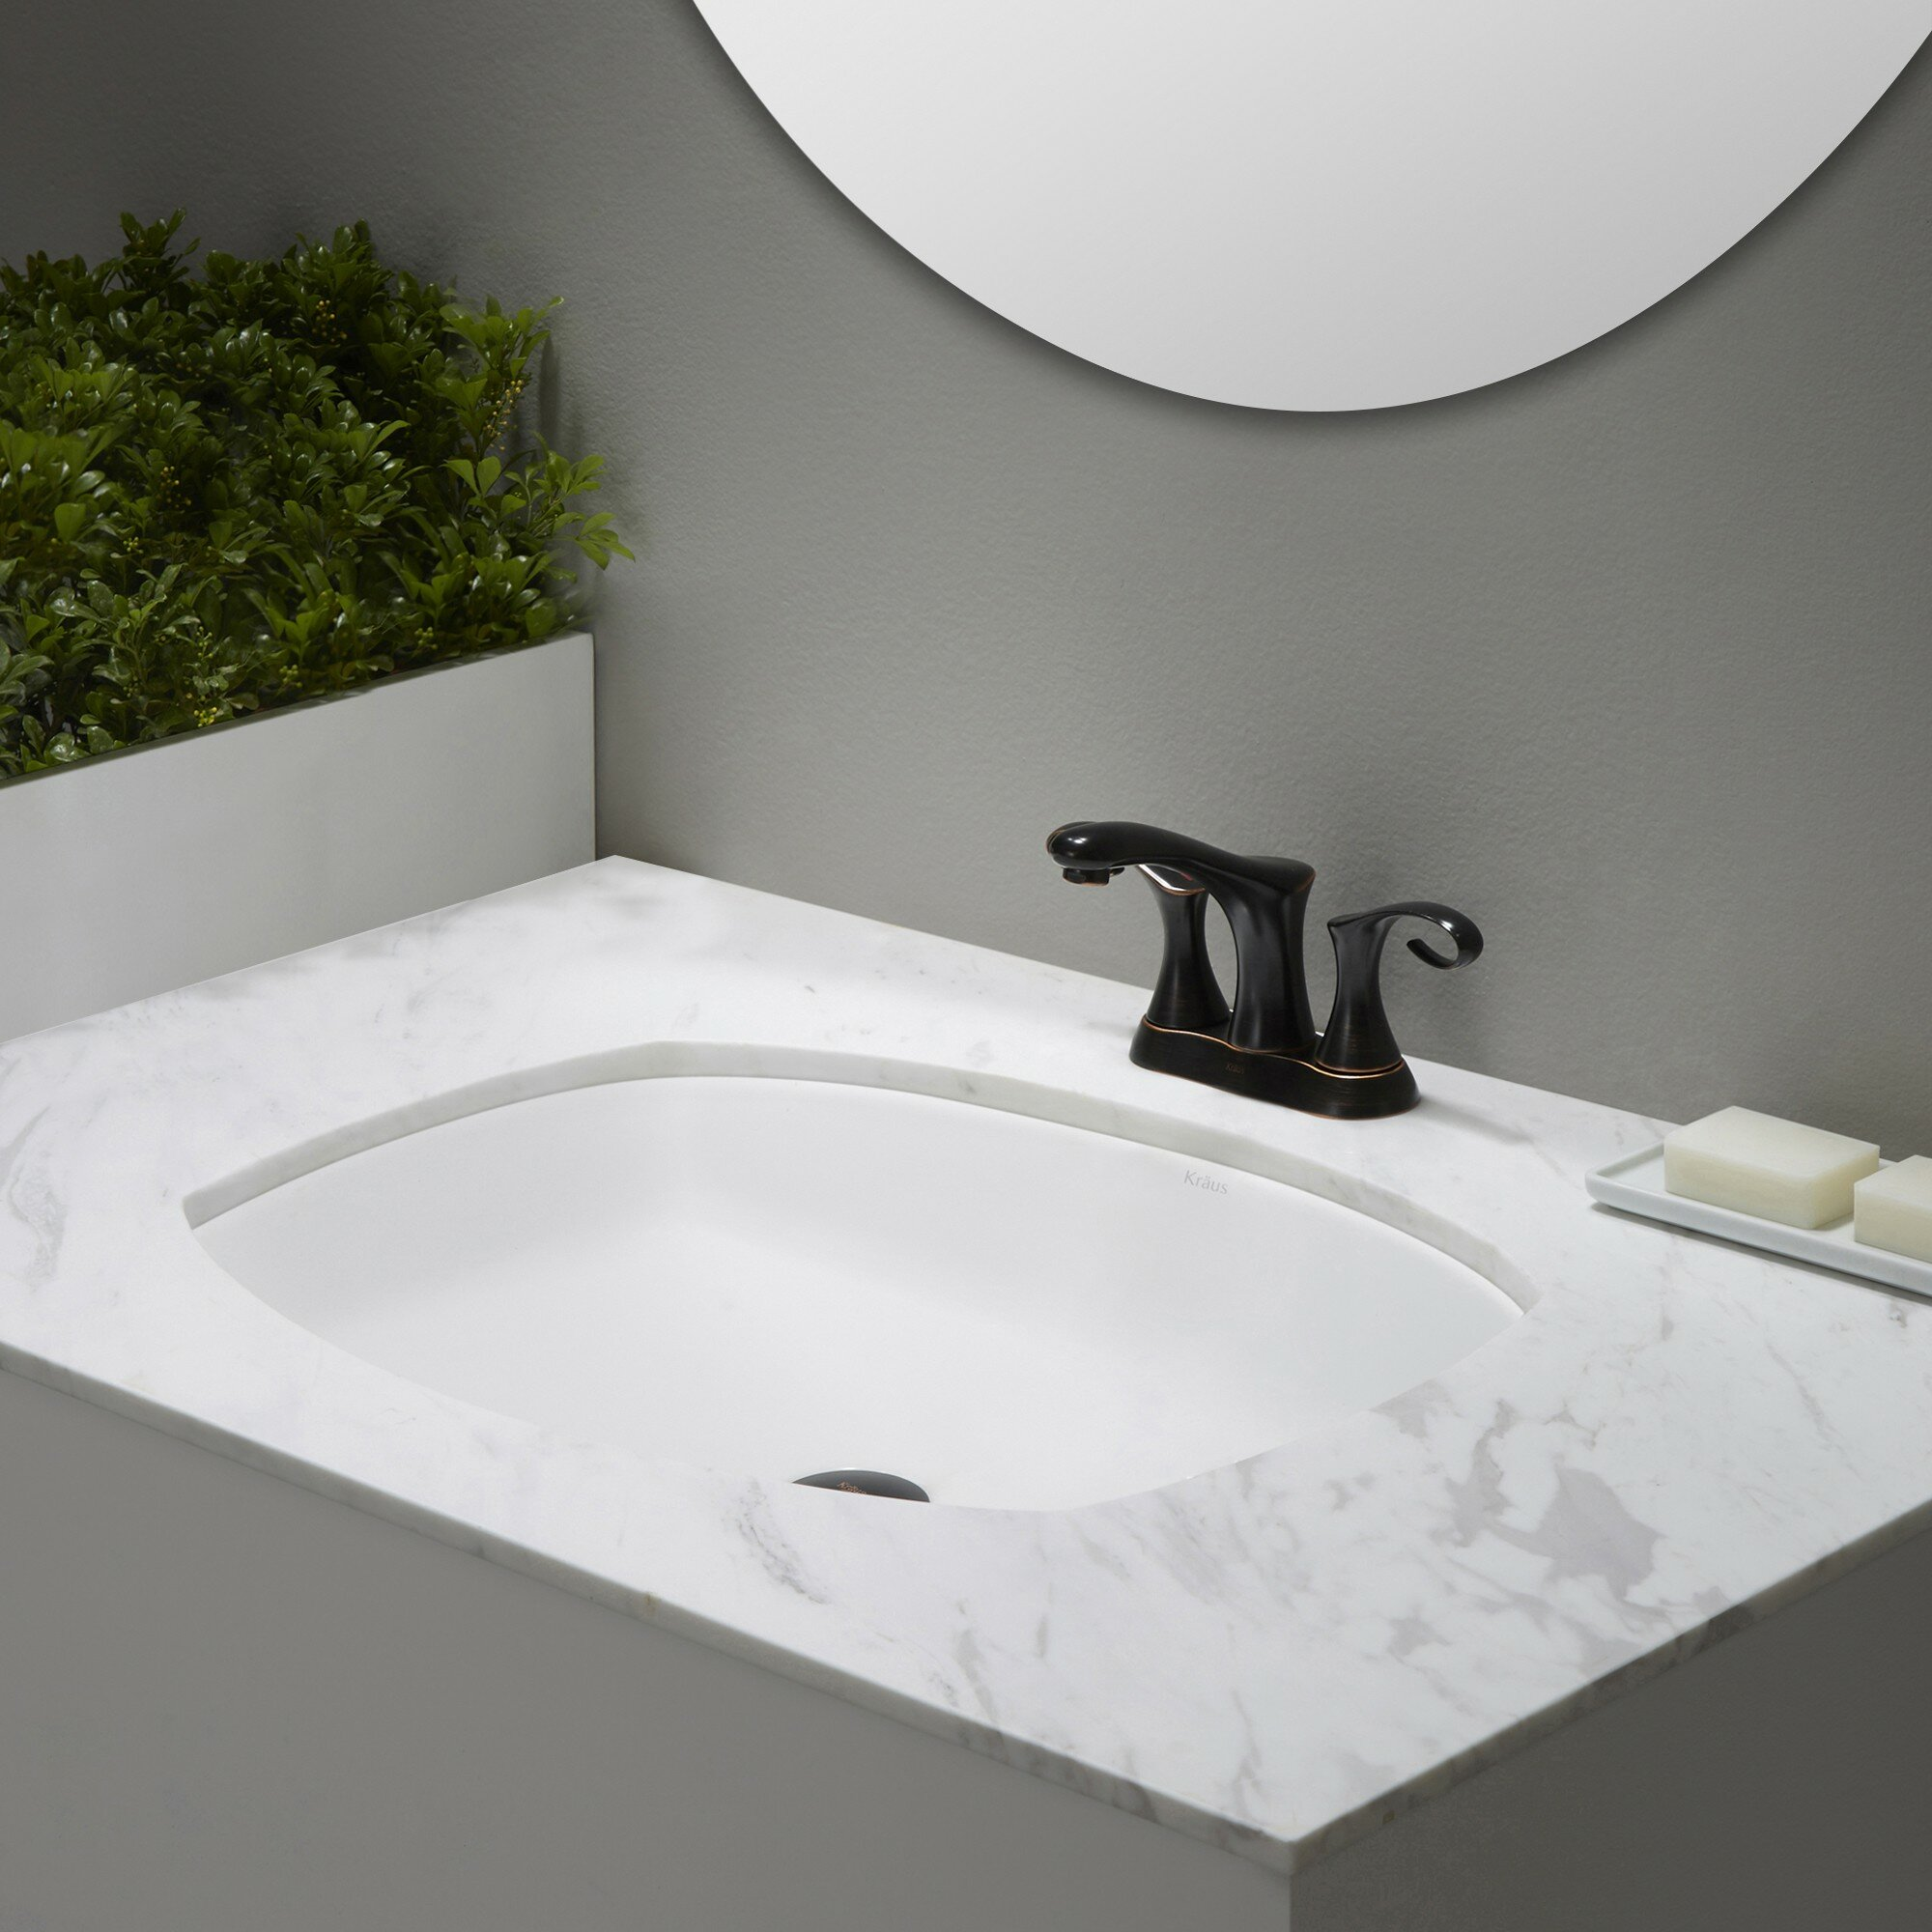 Rectangular Bathroom Sinks Undermount : ... ? Ceramic Flared Rectangular Undermount Bathroom Sink with Overflow